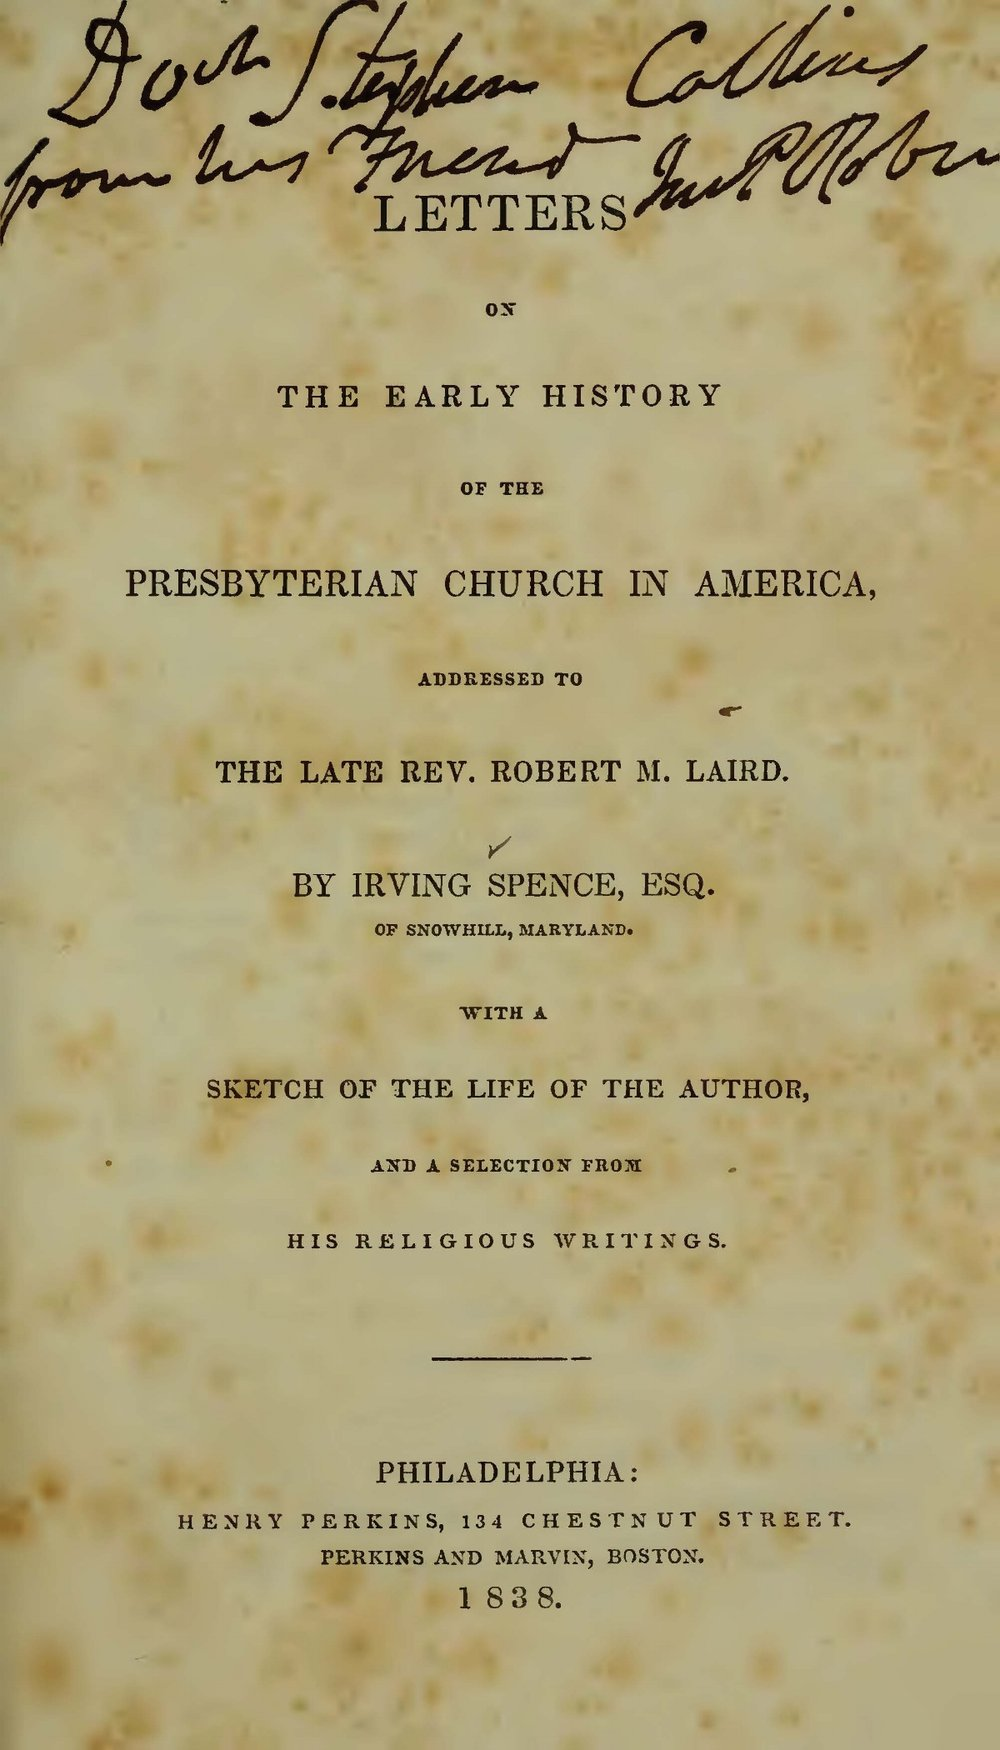 Spence, Irving, Letters on the Early History of the Presbyterian Church in America Title Page.jpg